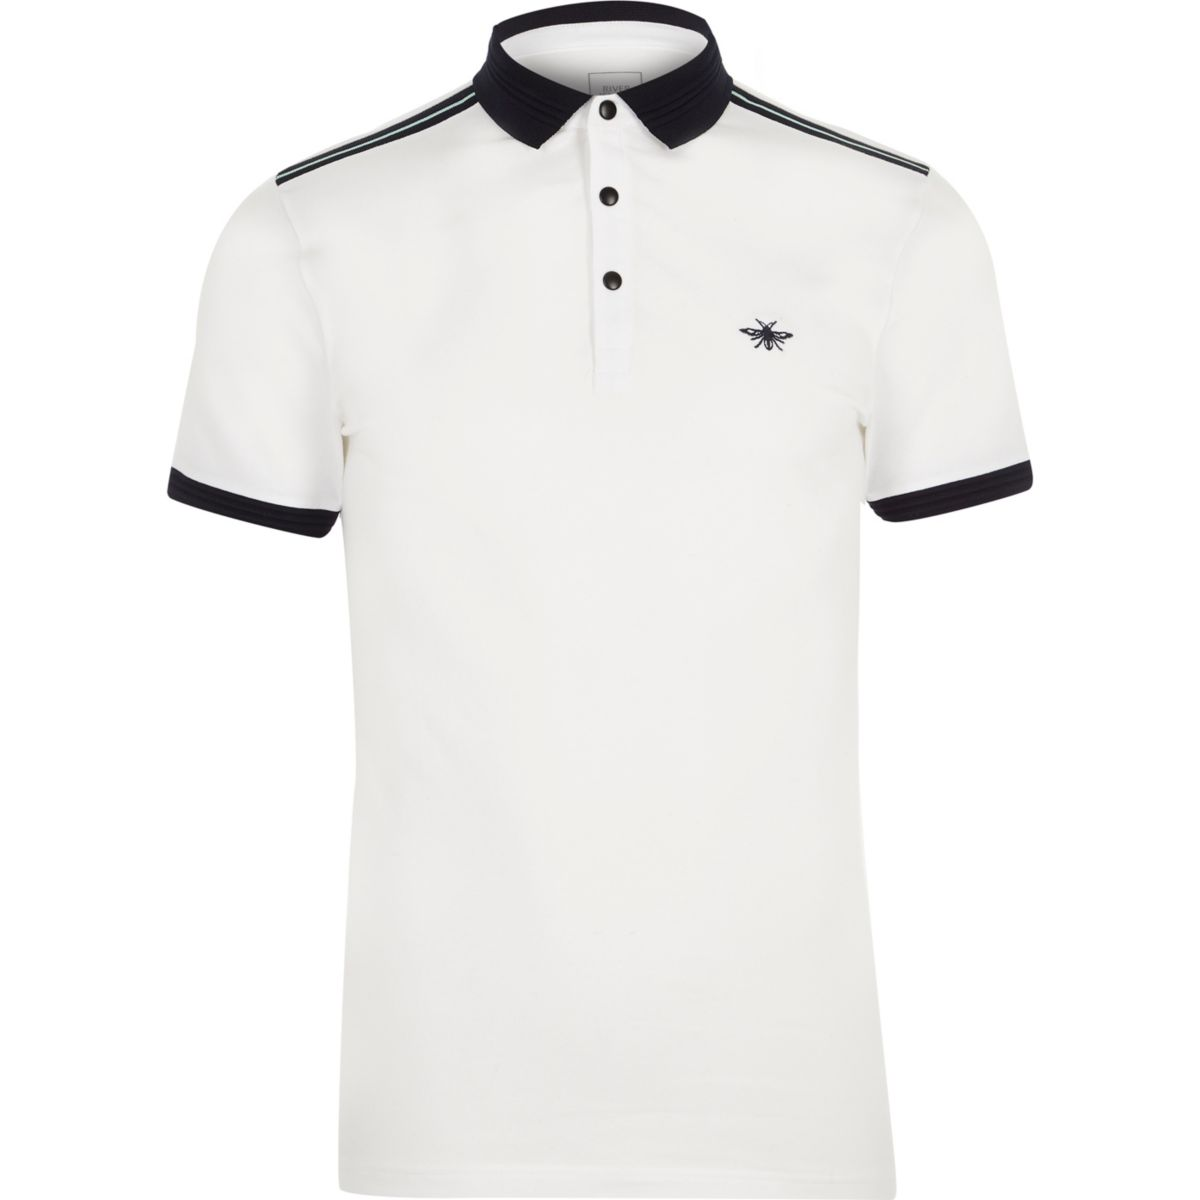 White short sleeve muscle fit polo shirt